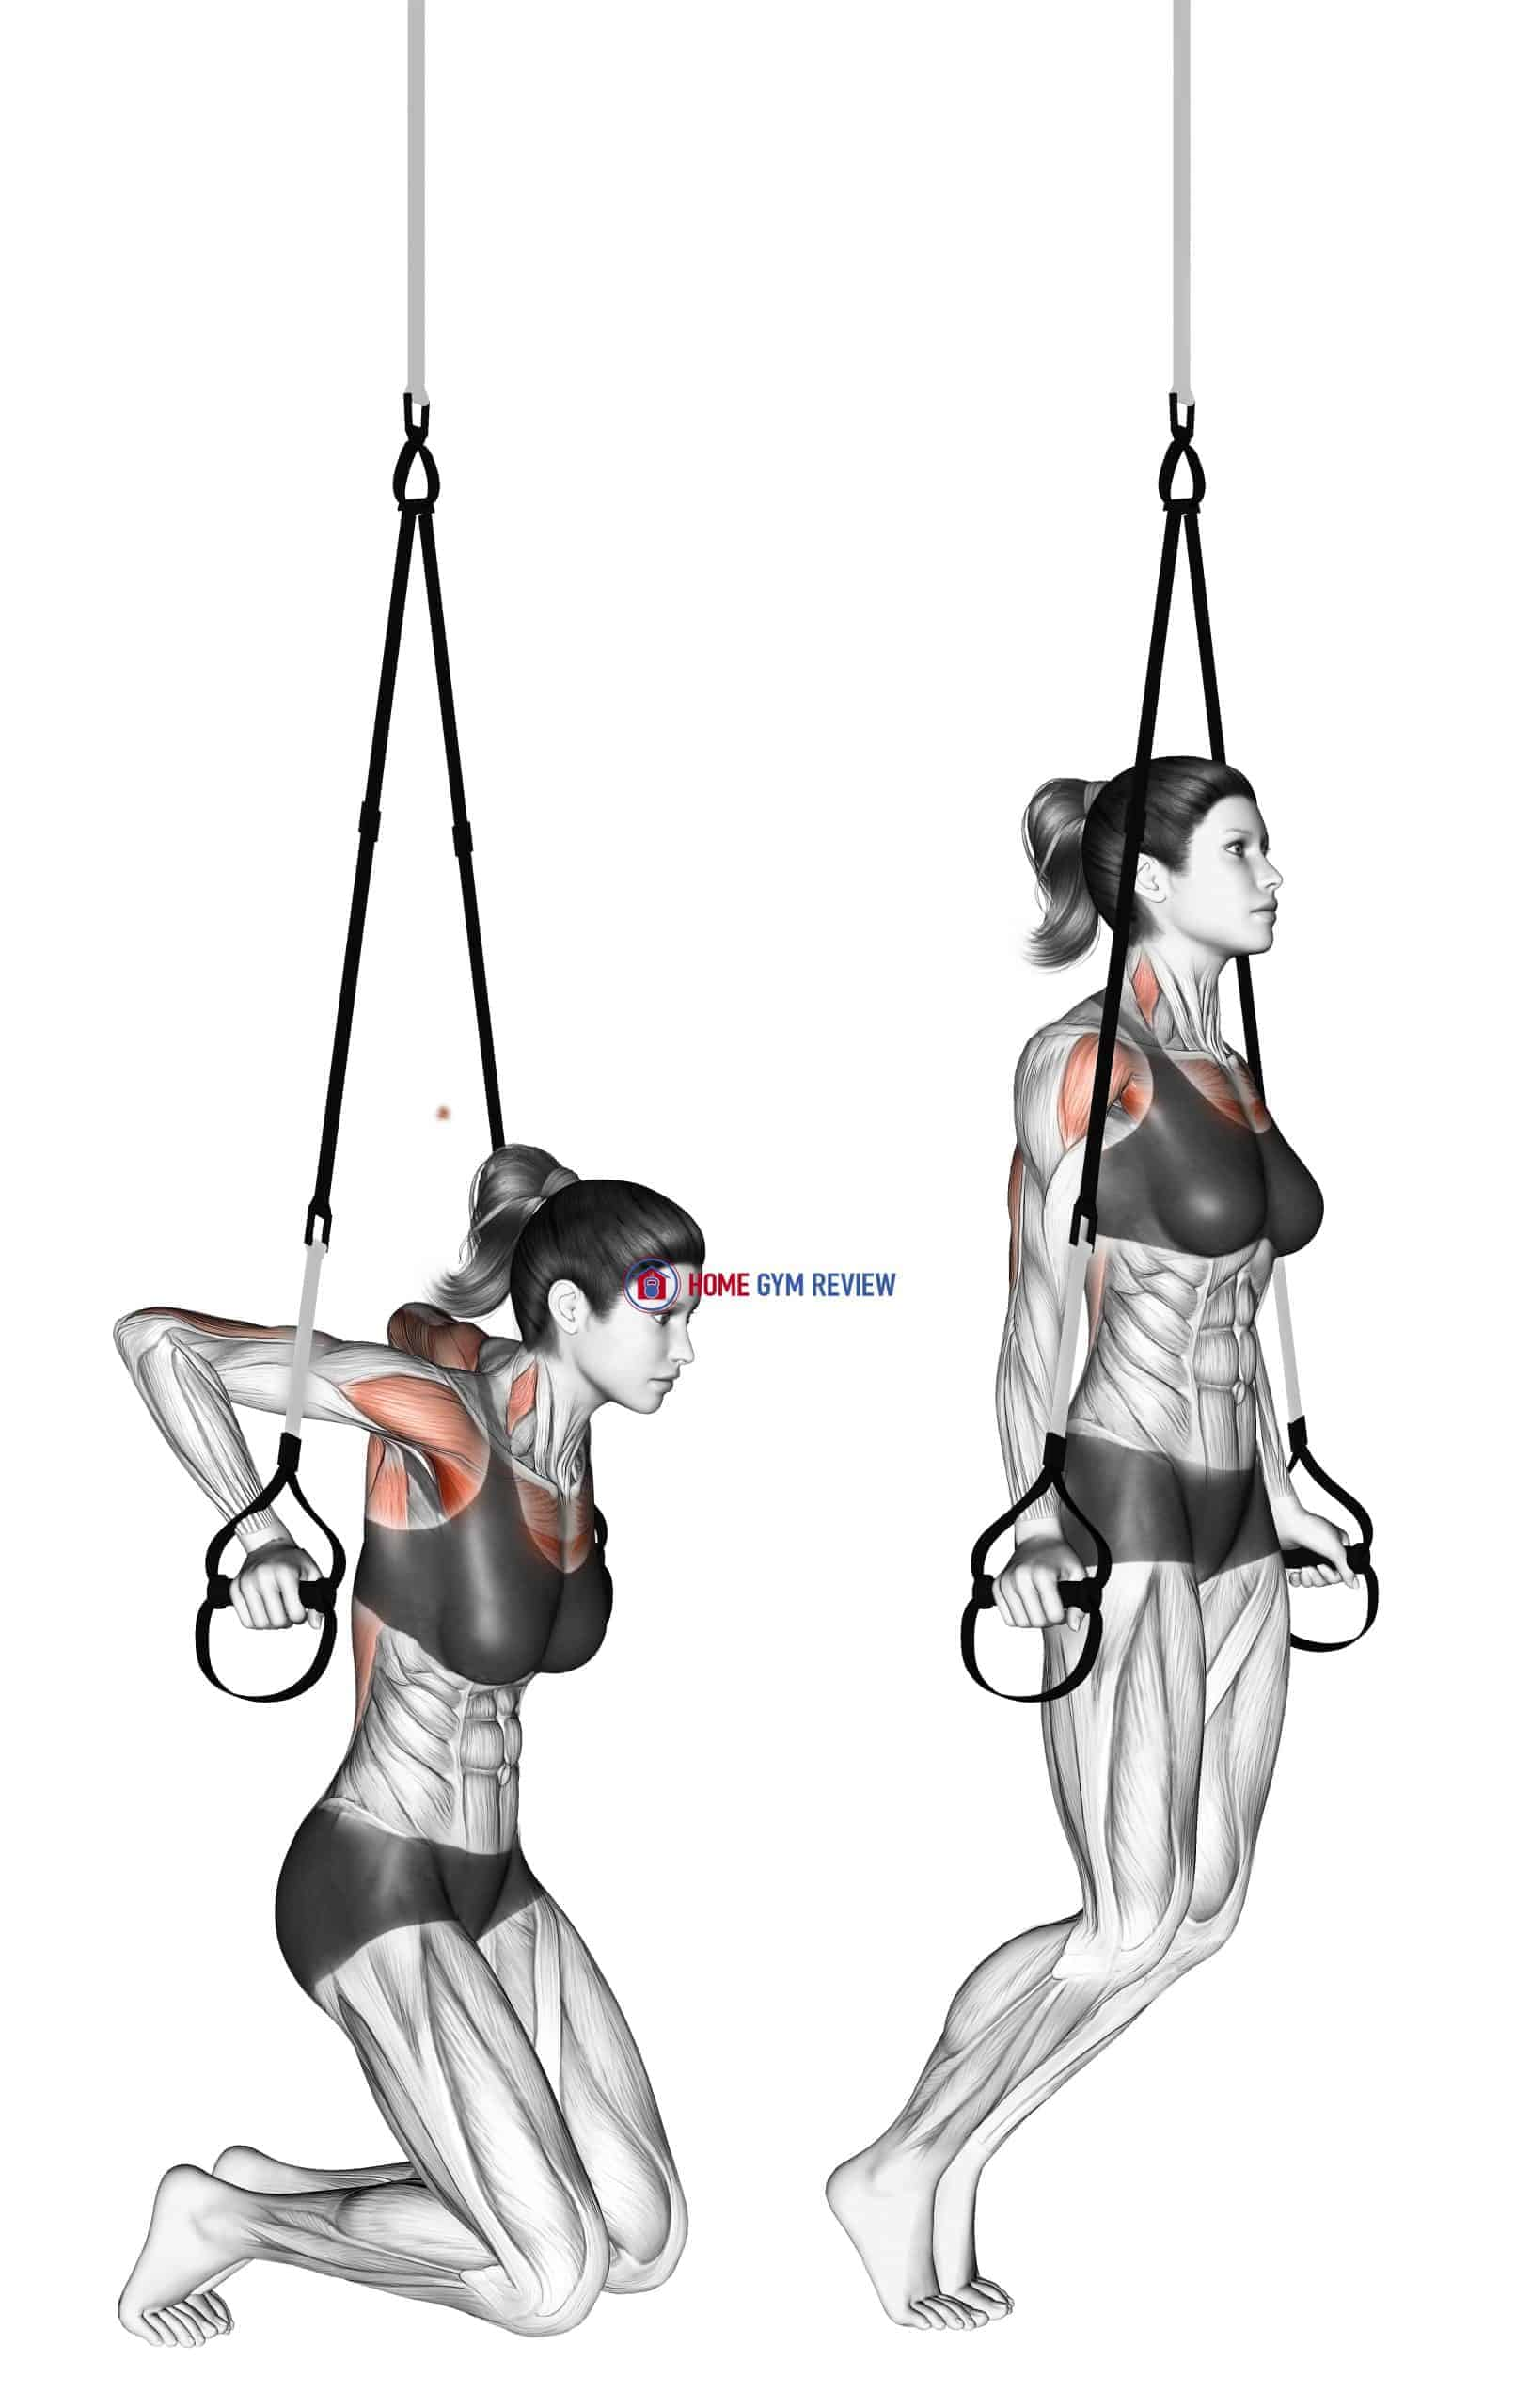 Suspension Self assisted Chest Dip